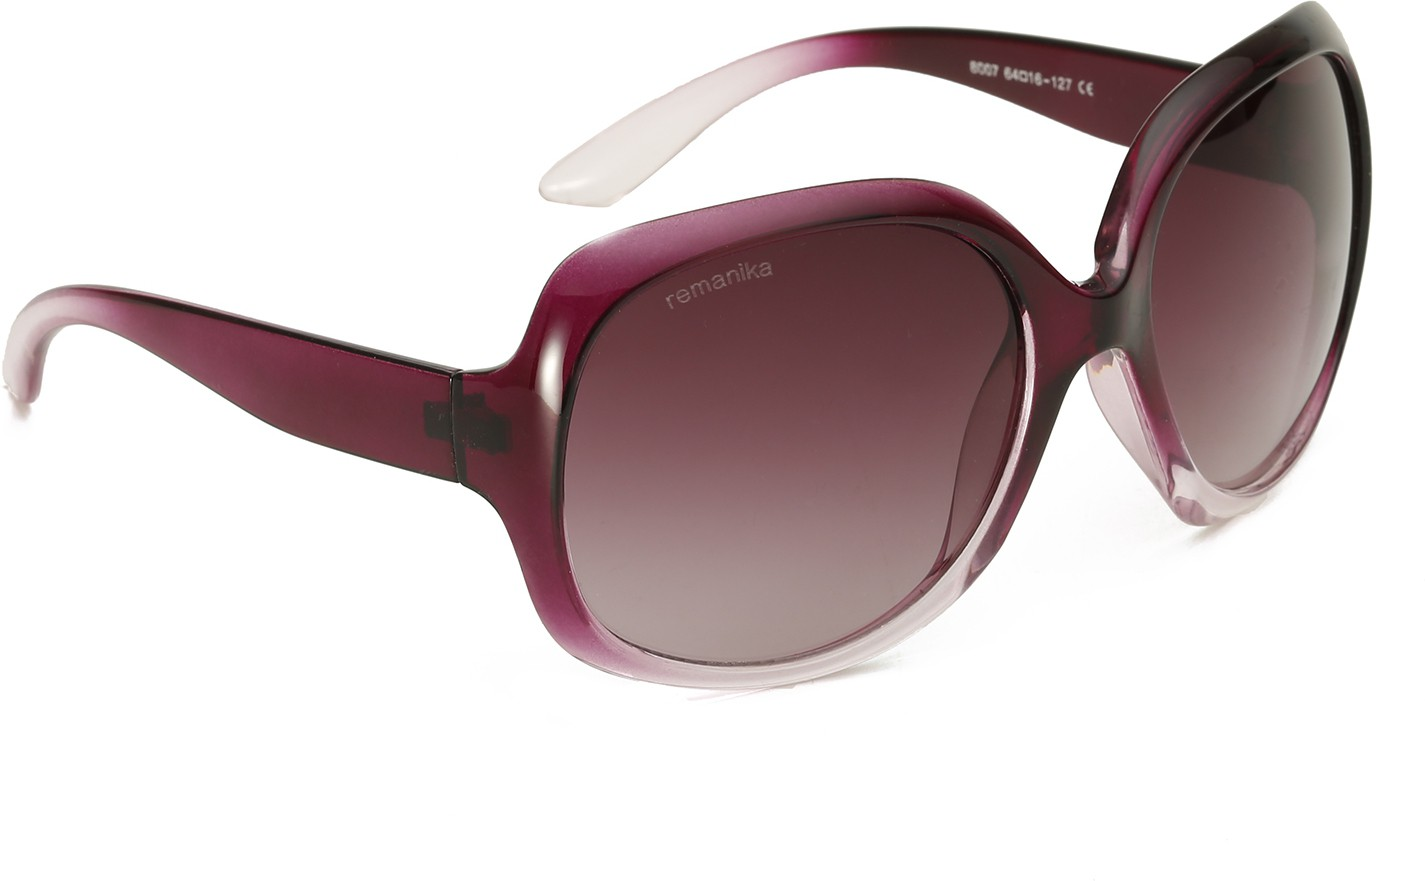 Deals - Delhi - Remanika <br> Womens Sunglasses<br> Category - sunglasses<br> Business - Flipkart.com